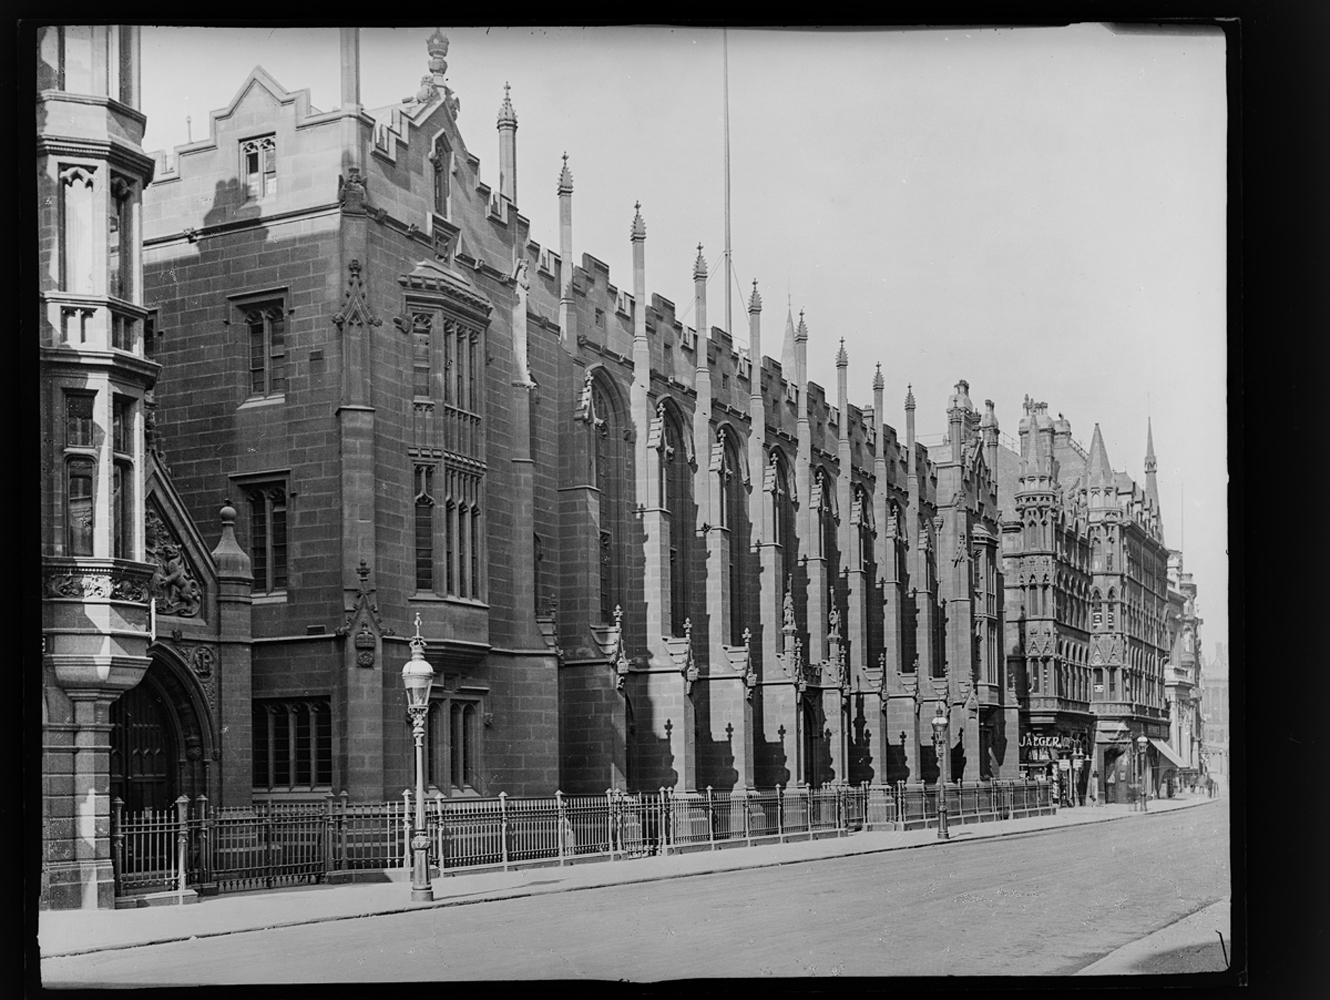 http://www.davidrowan.org/files/gimgs/54_ke-archive-extra-large-glass-plate-negatives----new-st-school-exterior.jpg